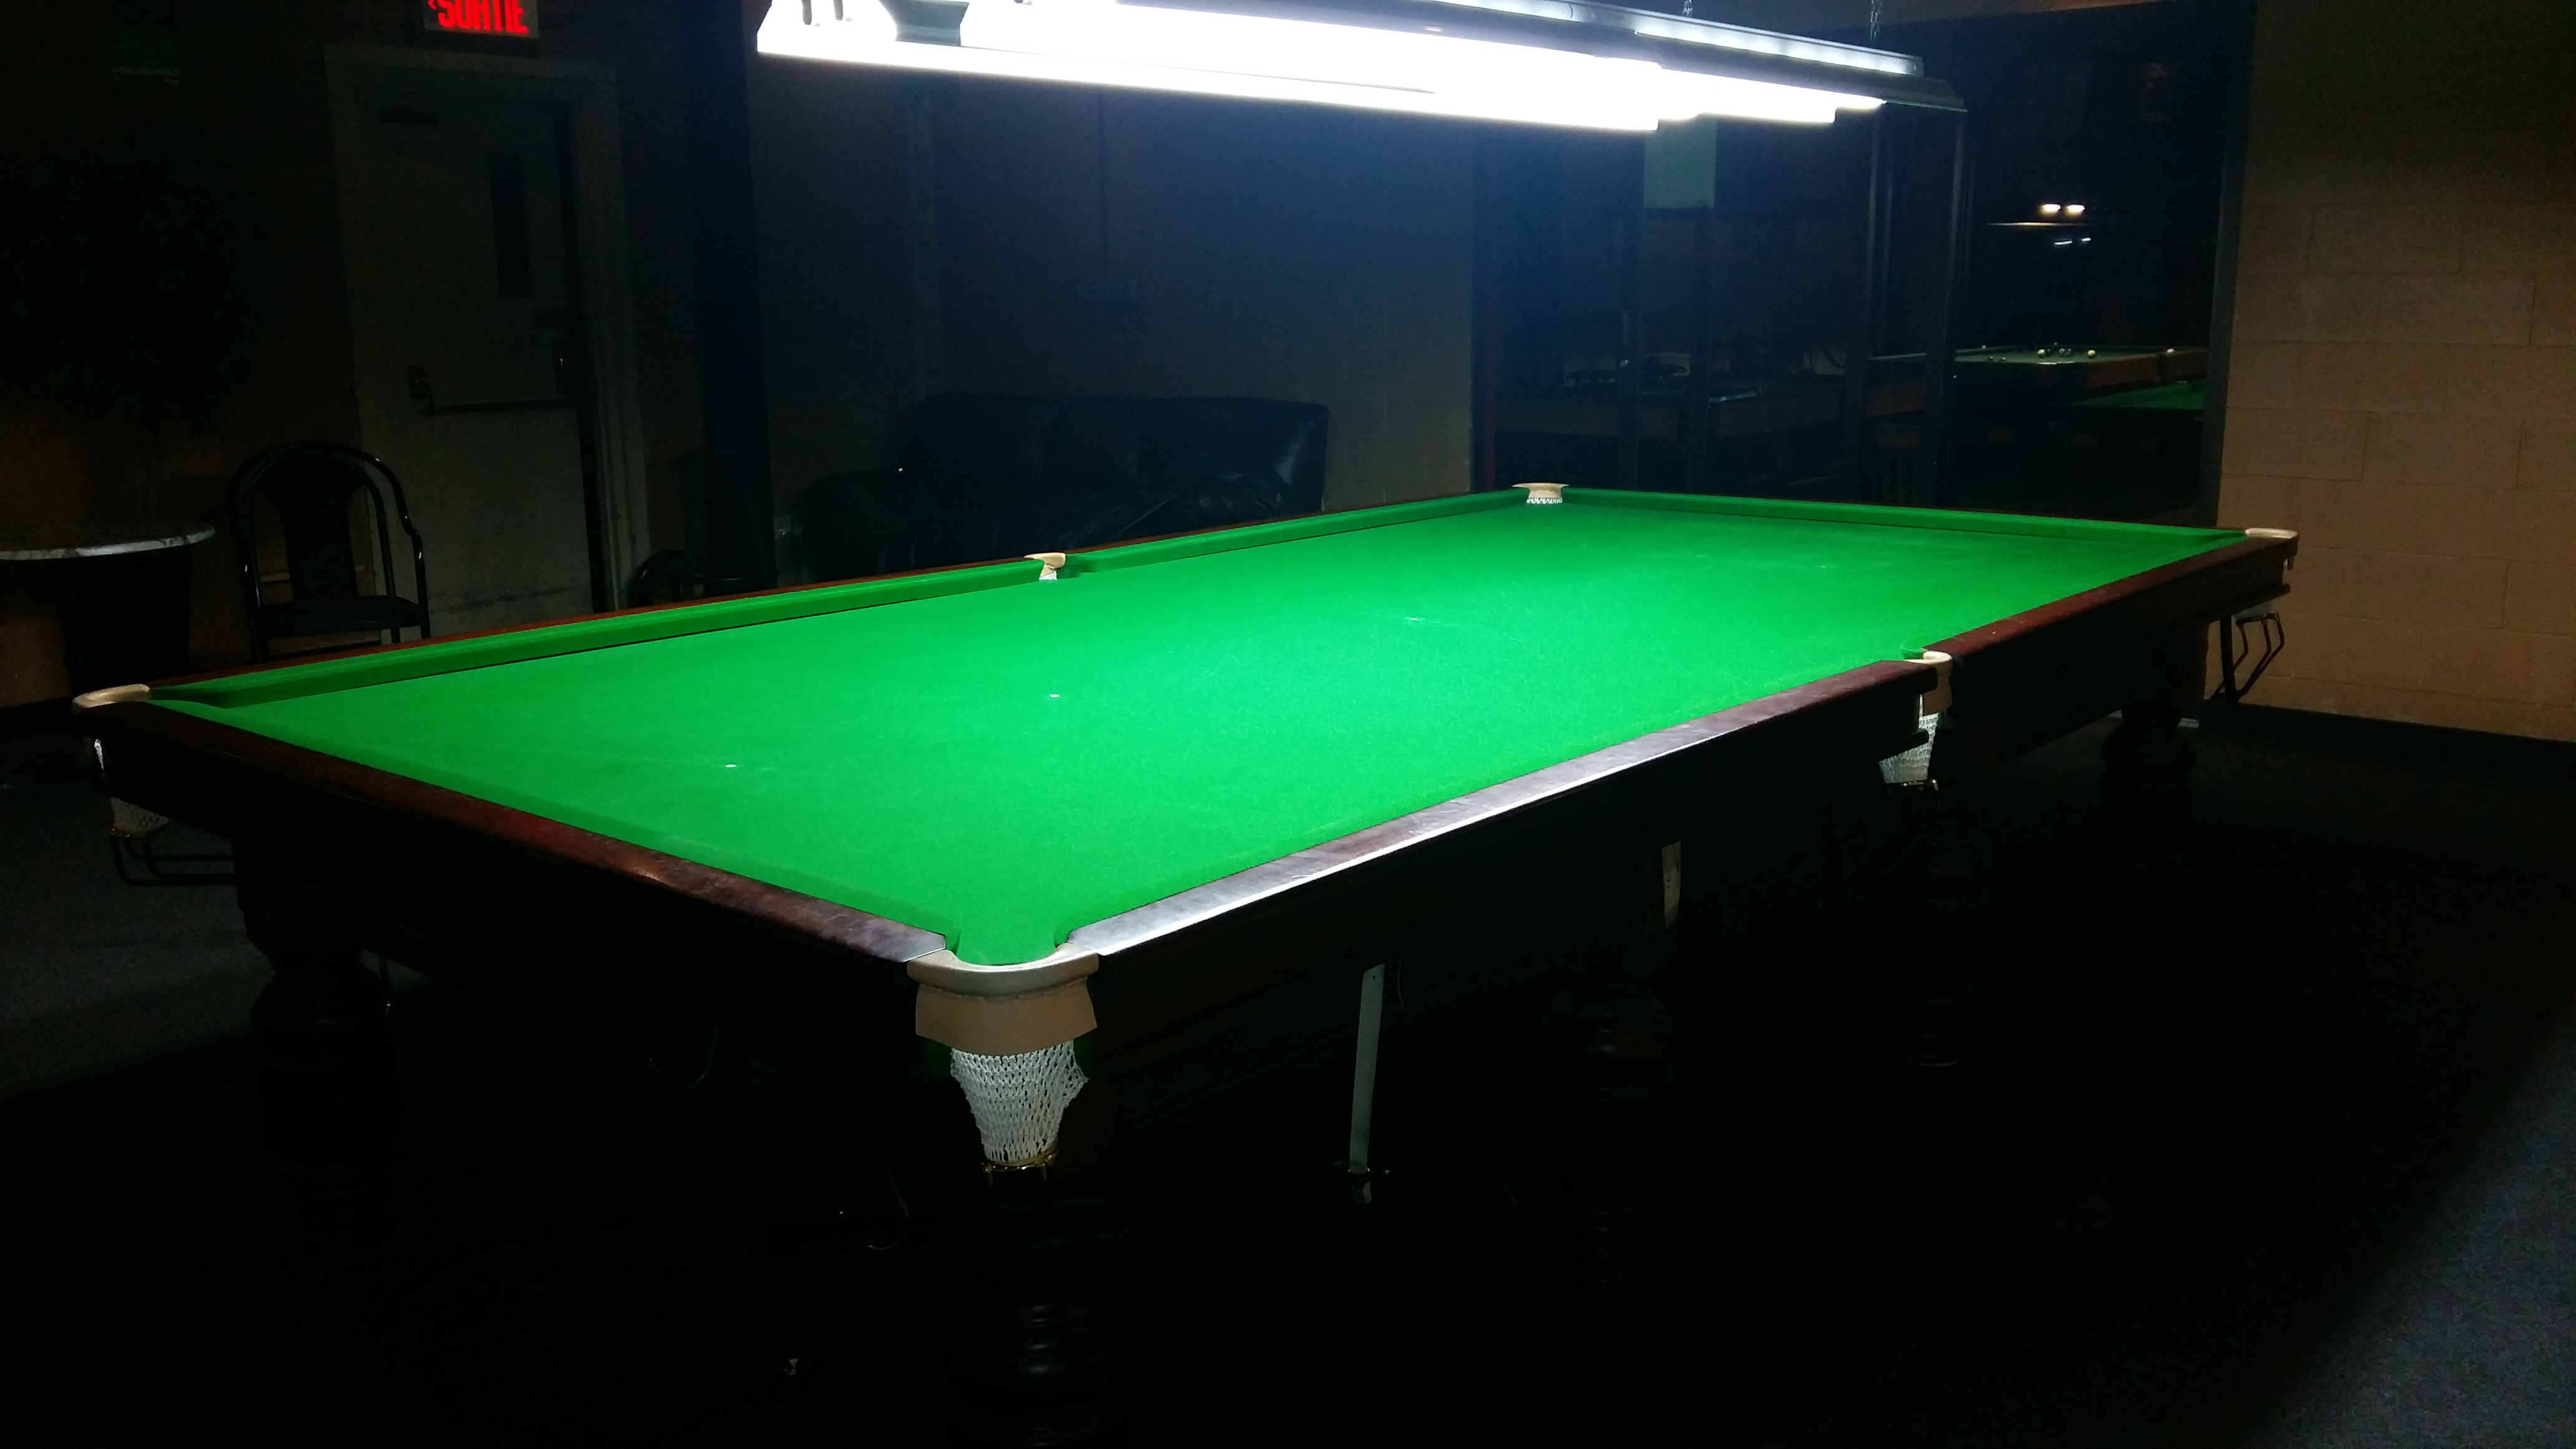 p table full riley asp snooker regis size